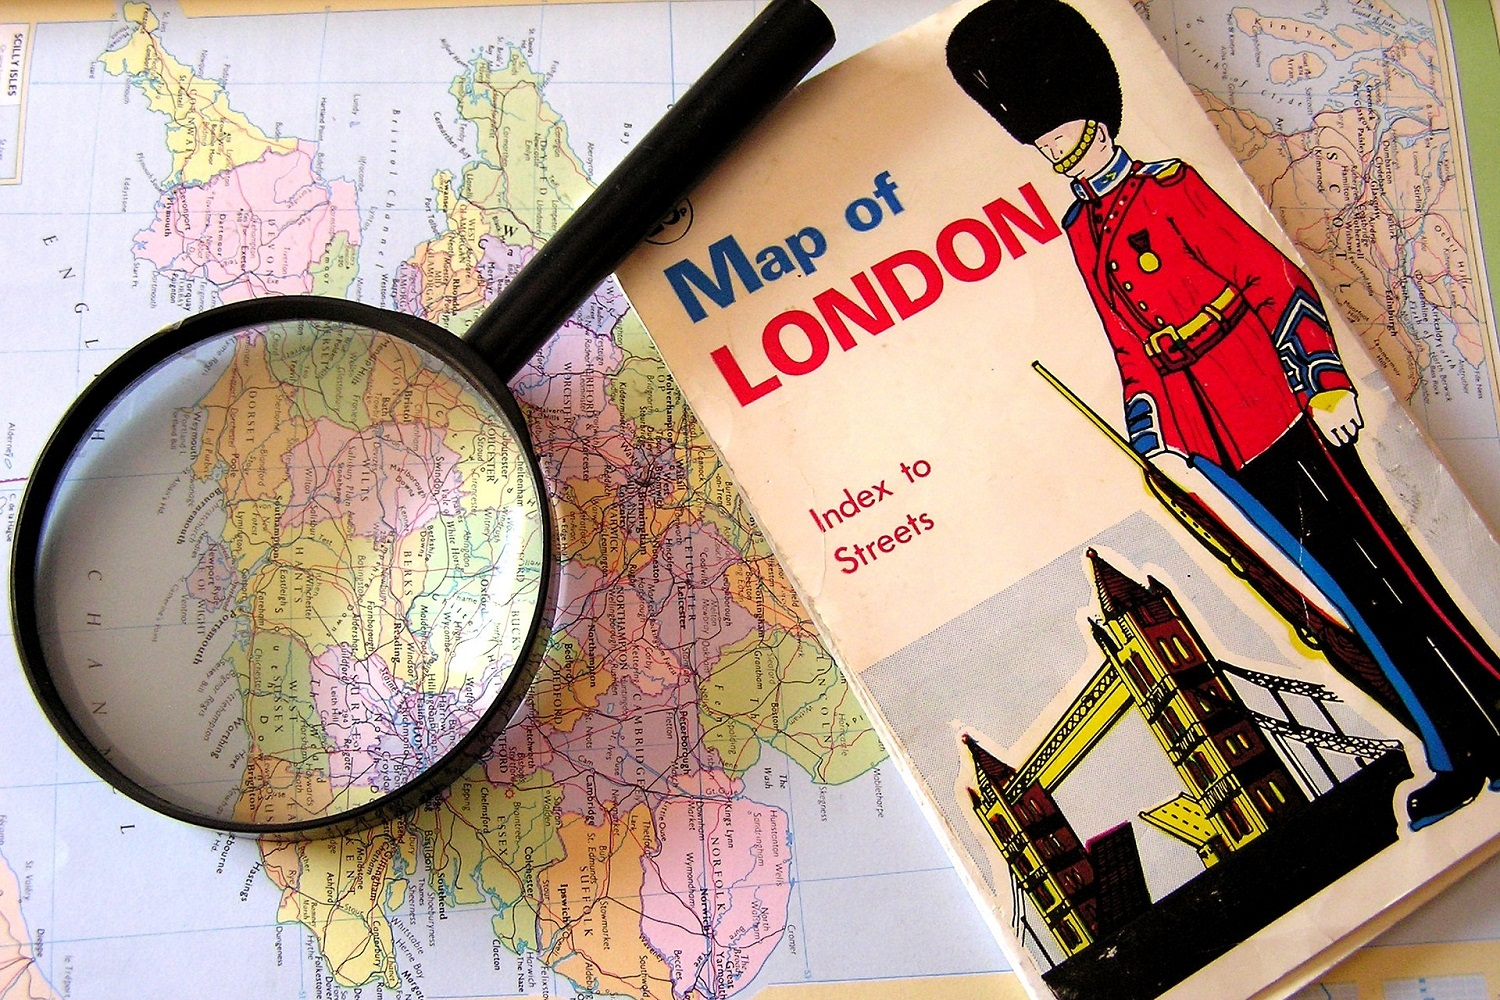 Image of a magnifying glass and London guidebook over a map of Great Britain.